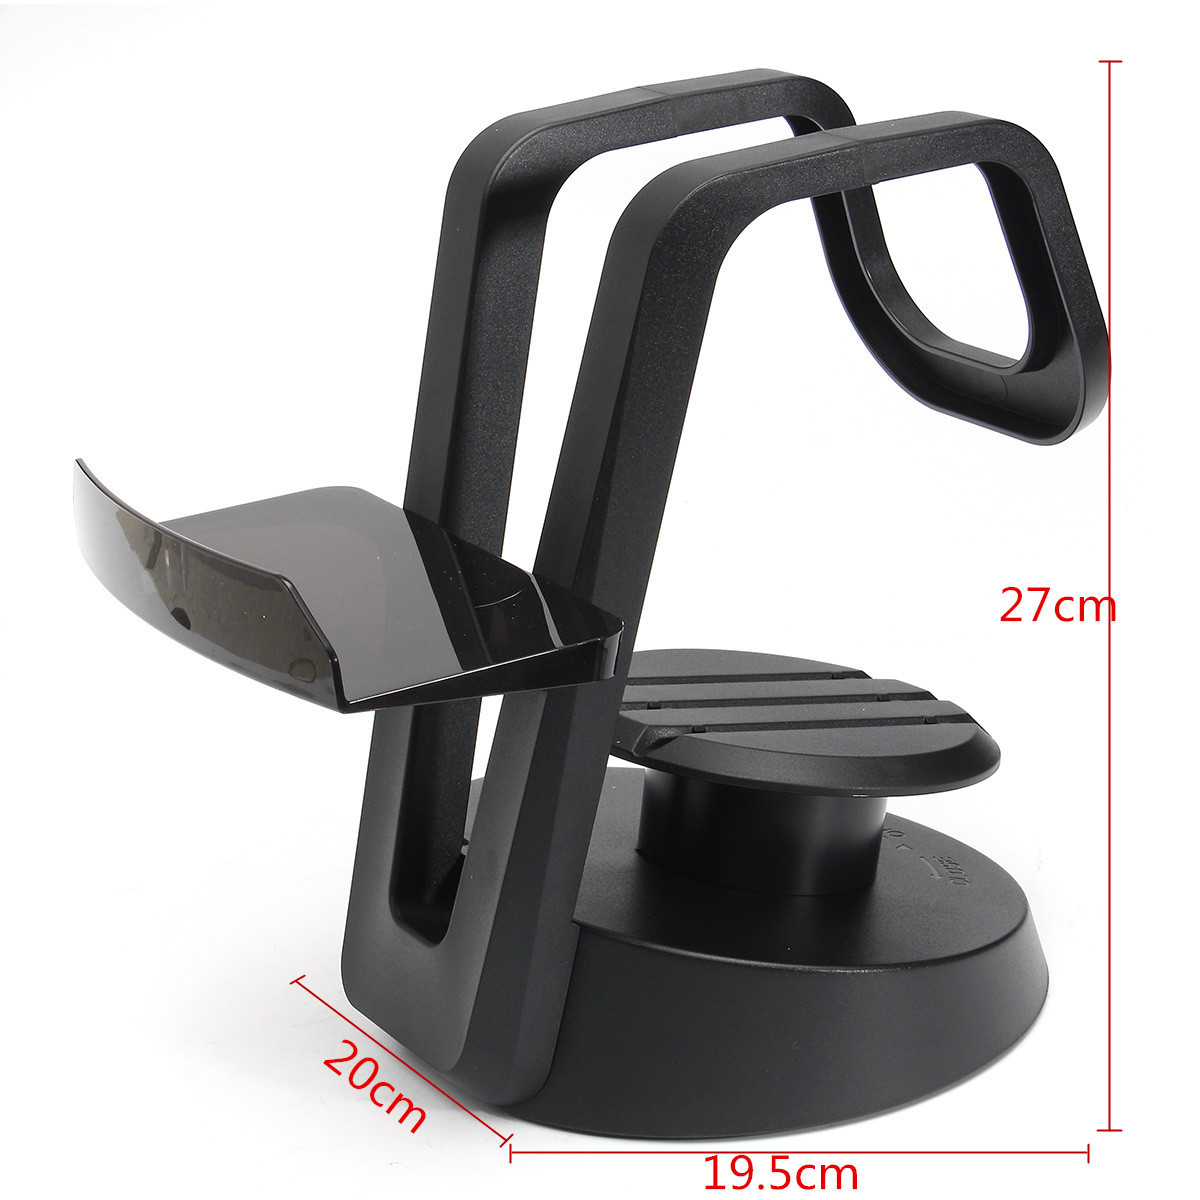 Universal VR Headset Stand Monut Holder Storage Organizer for VR Glasses VIVE Oculus Rift CV1 DK2